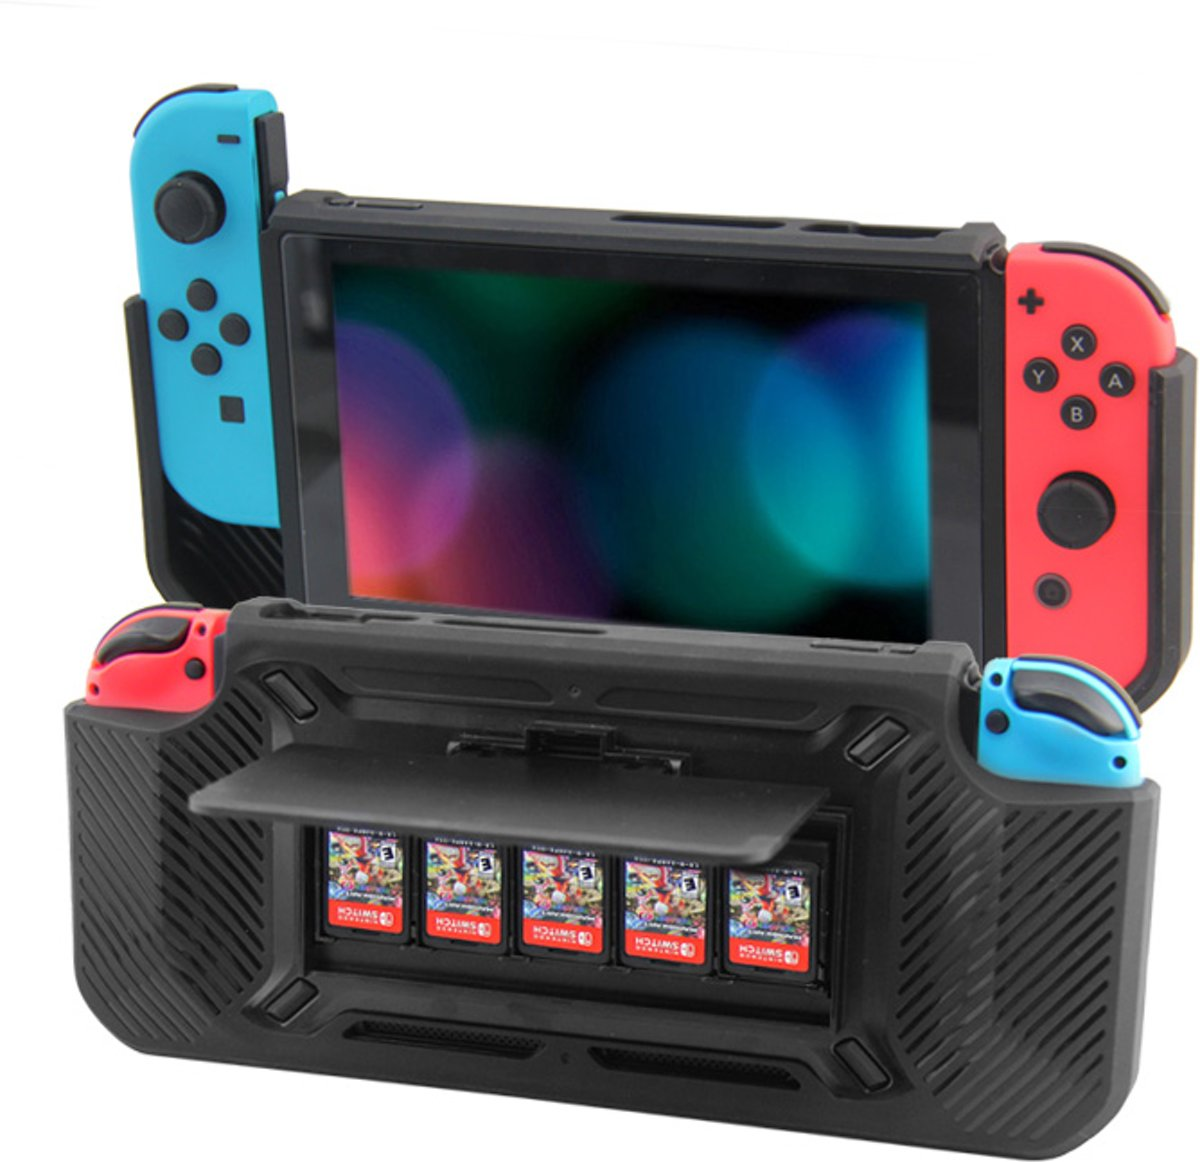 Nintendo Switch - Case, Standaard en Card Slot in één